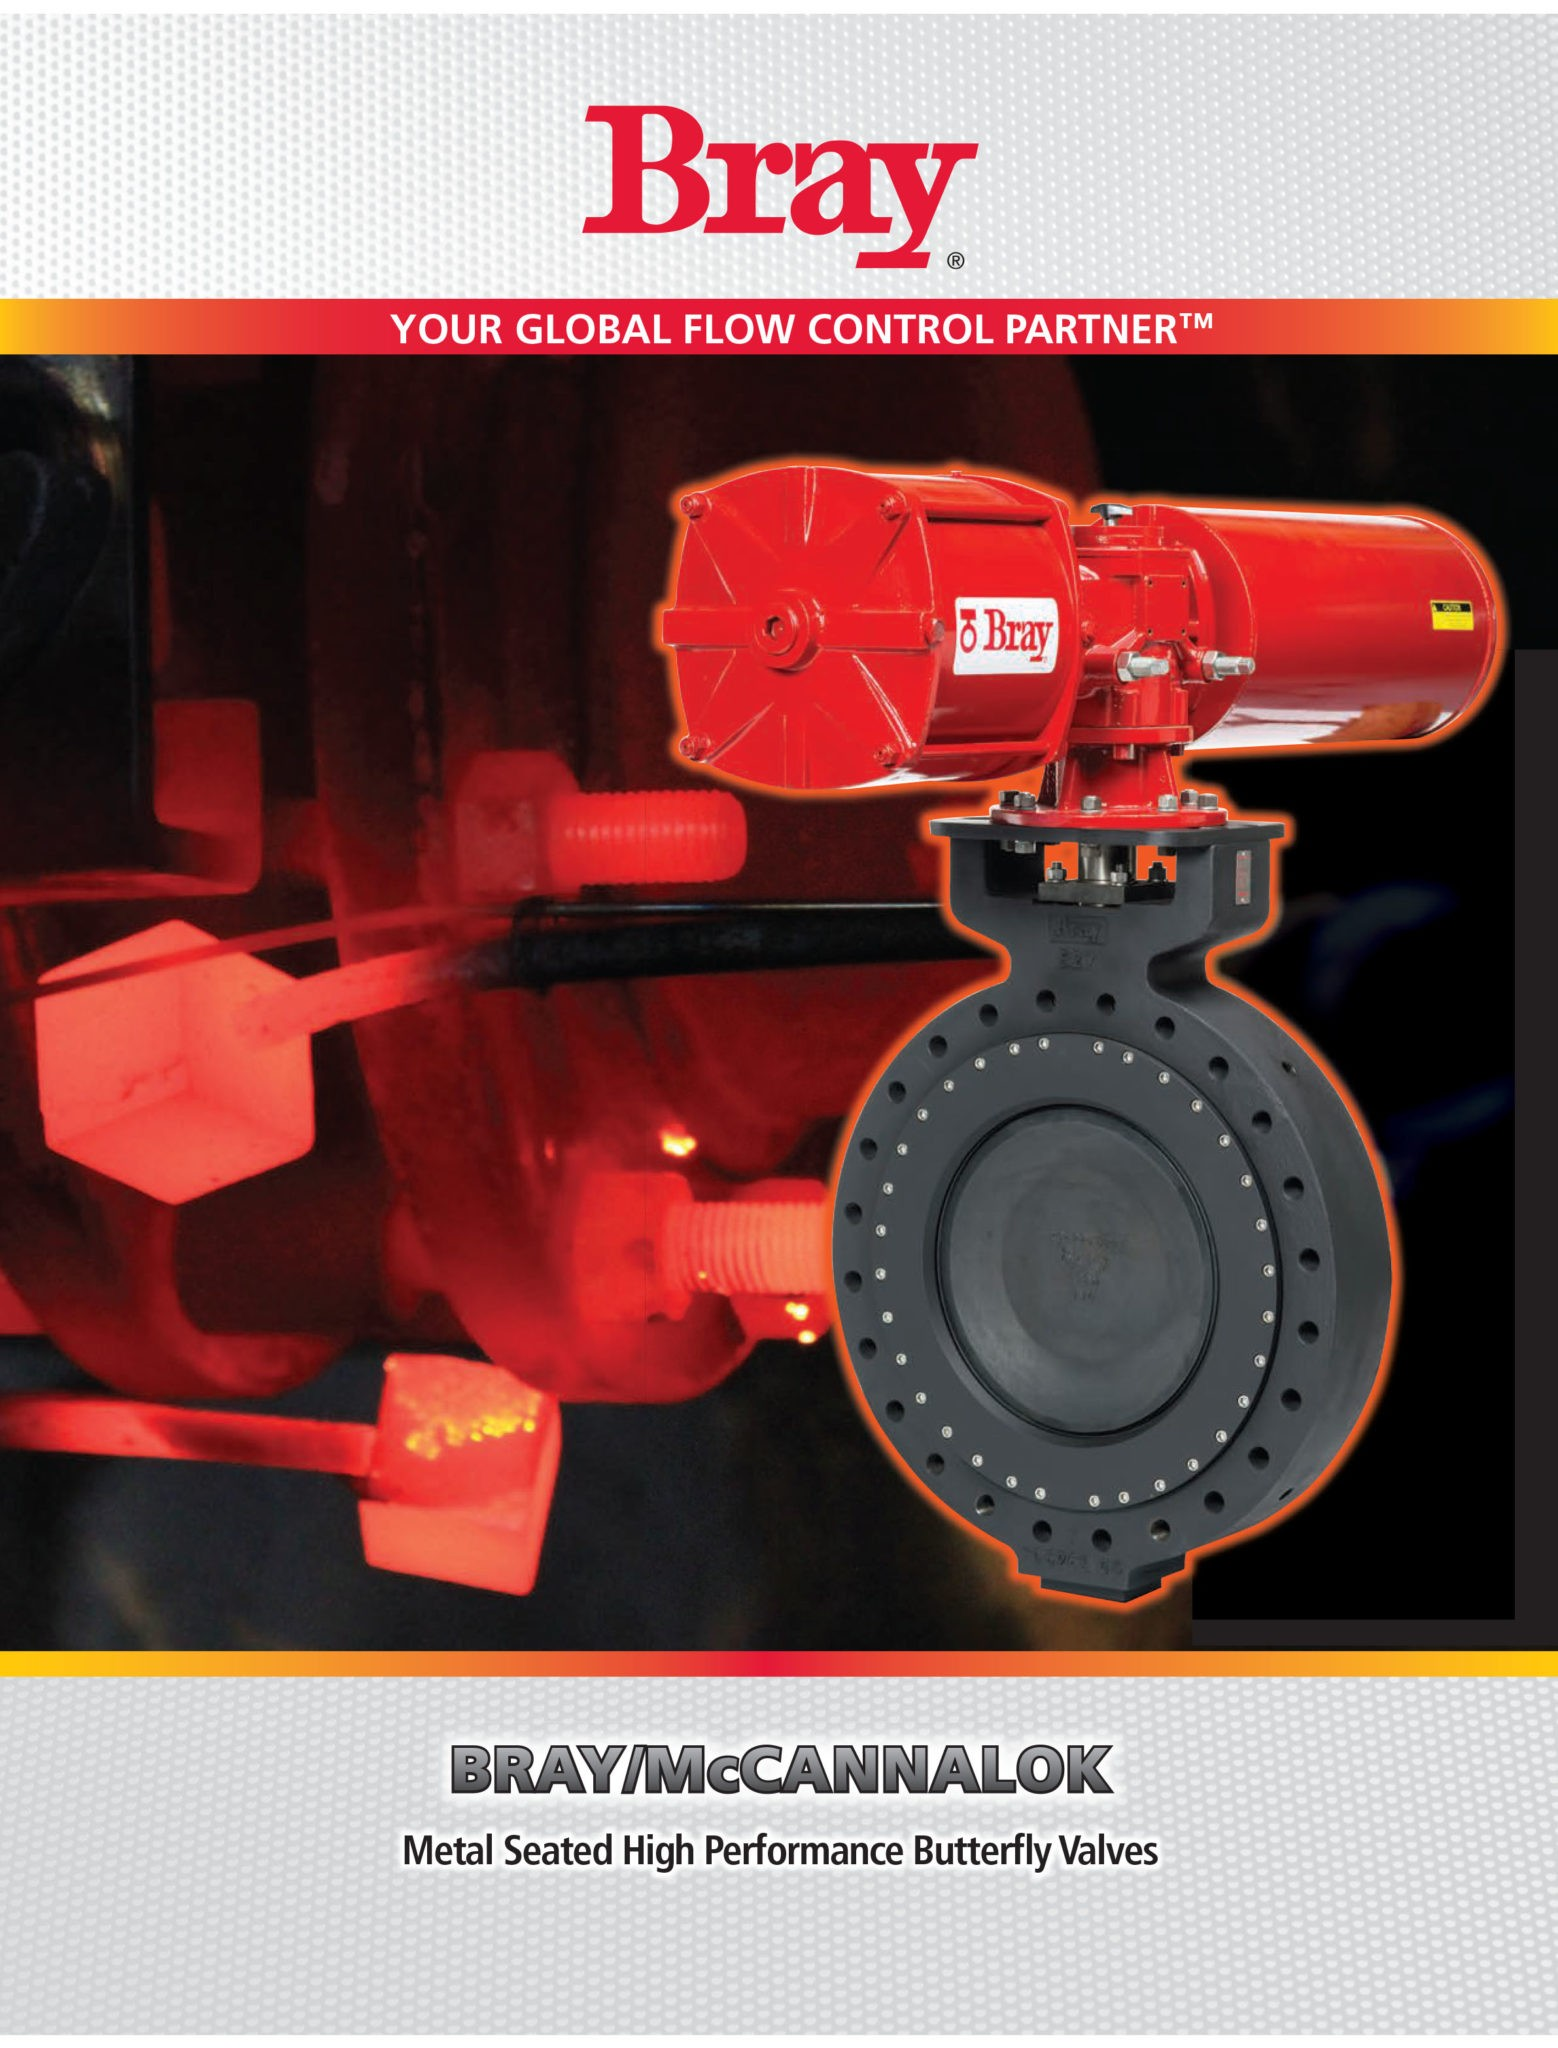 Metal Seated High Performance Butterfly Valves